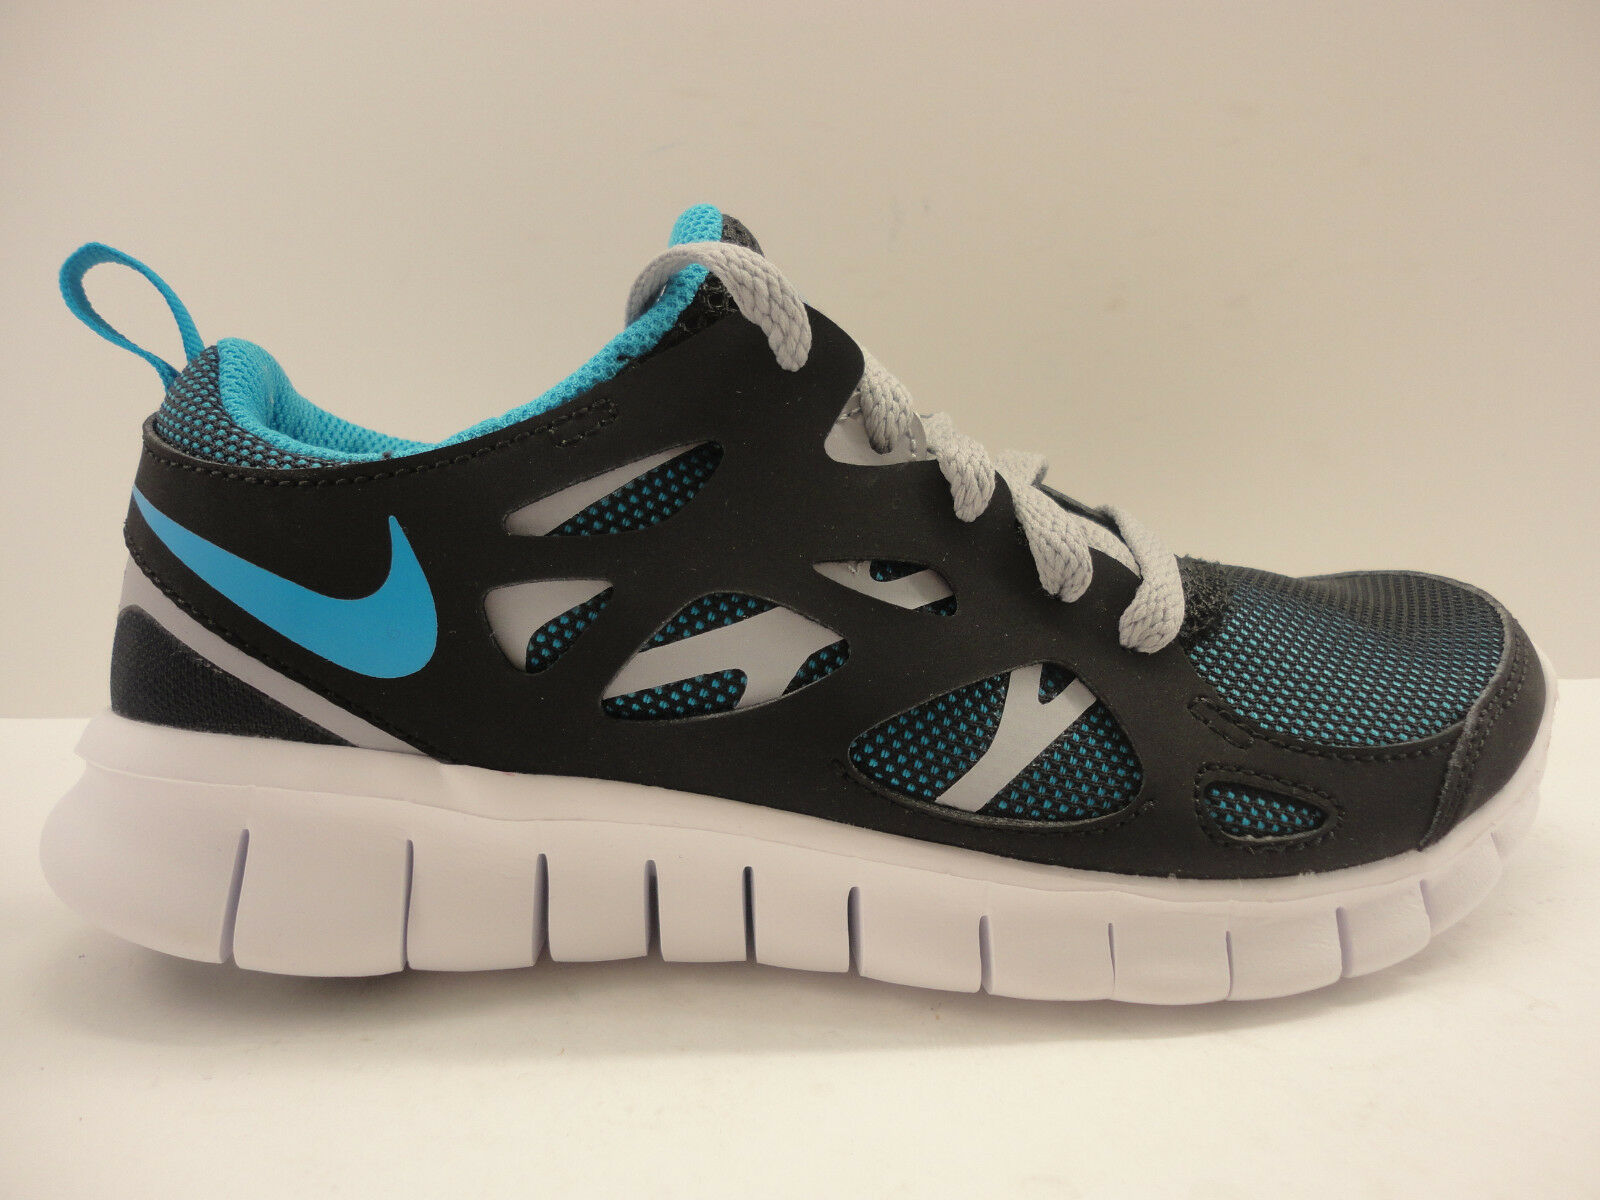 Nike Free Run 2 GS 443742 040 Fitness Chaussures De Course